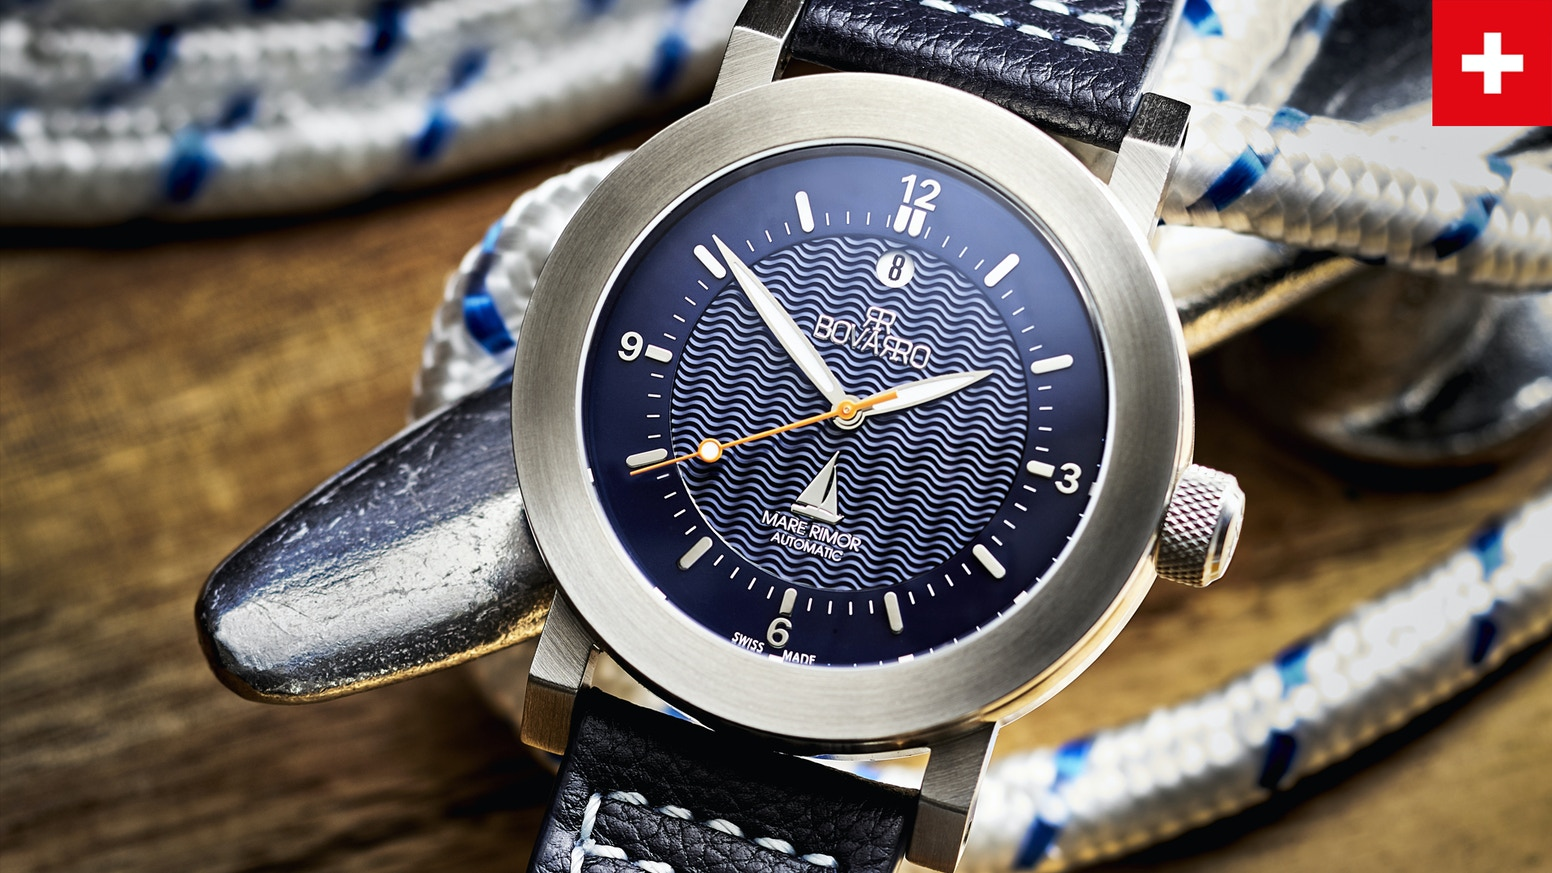 Bovarro Mare Rimor - Explore the Sea. Swiss Made watches in Chronograph, STP and ETA 2824-2 Automatic Top Grade Movemnt Limited Edition